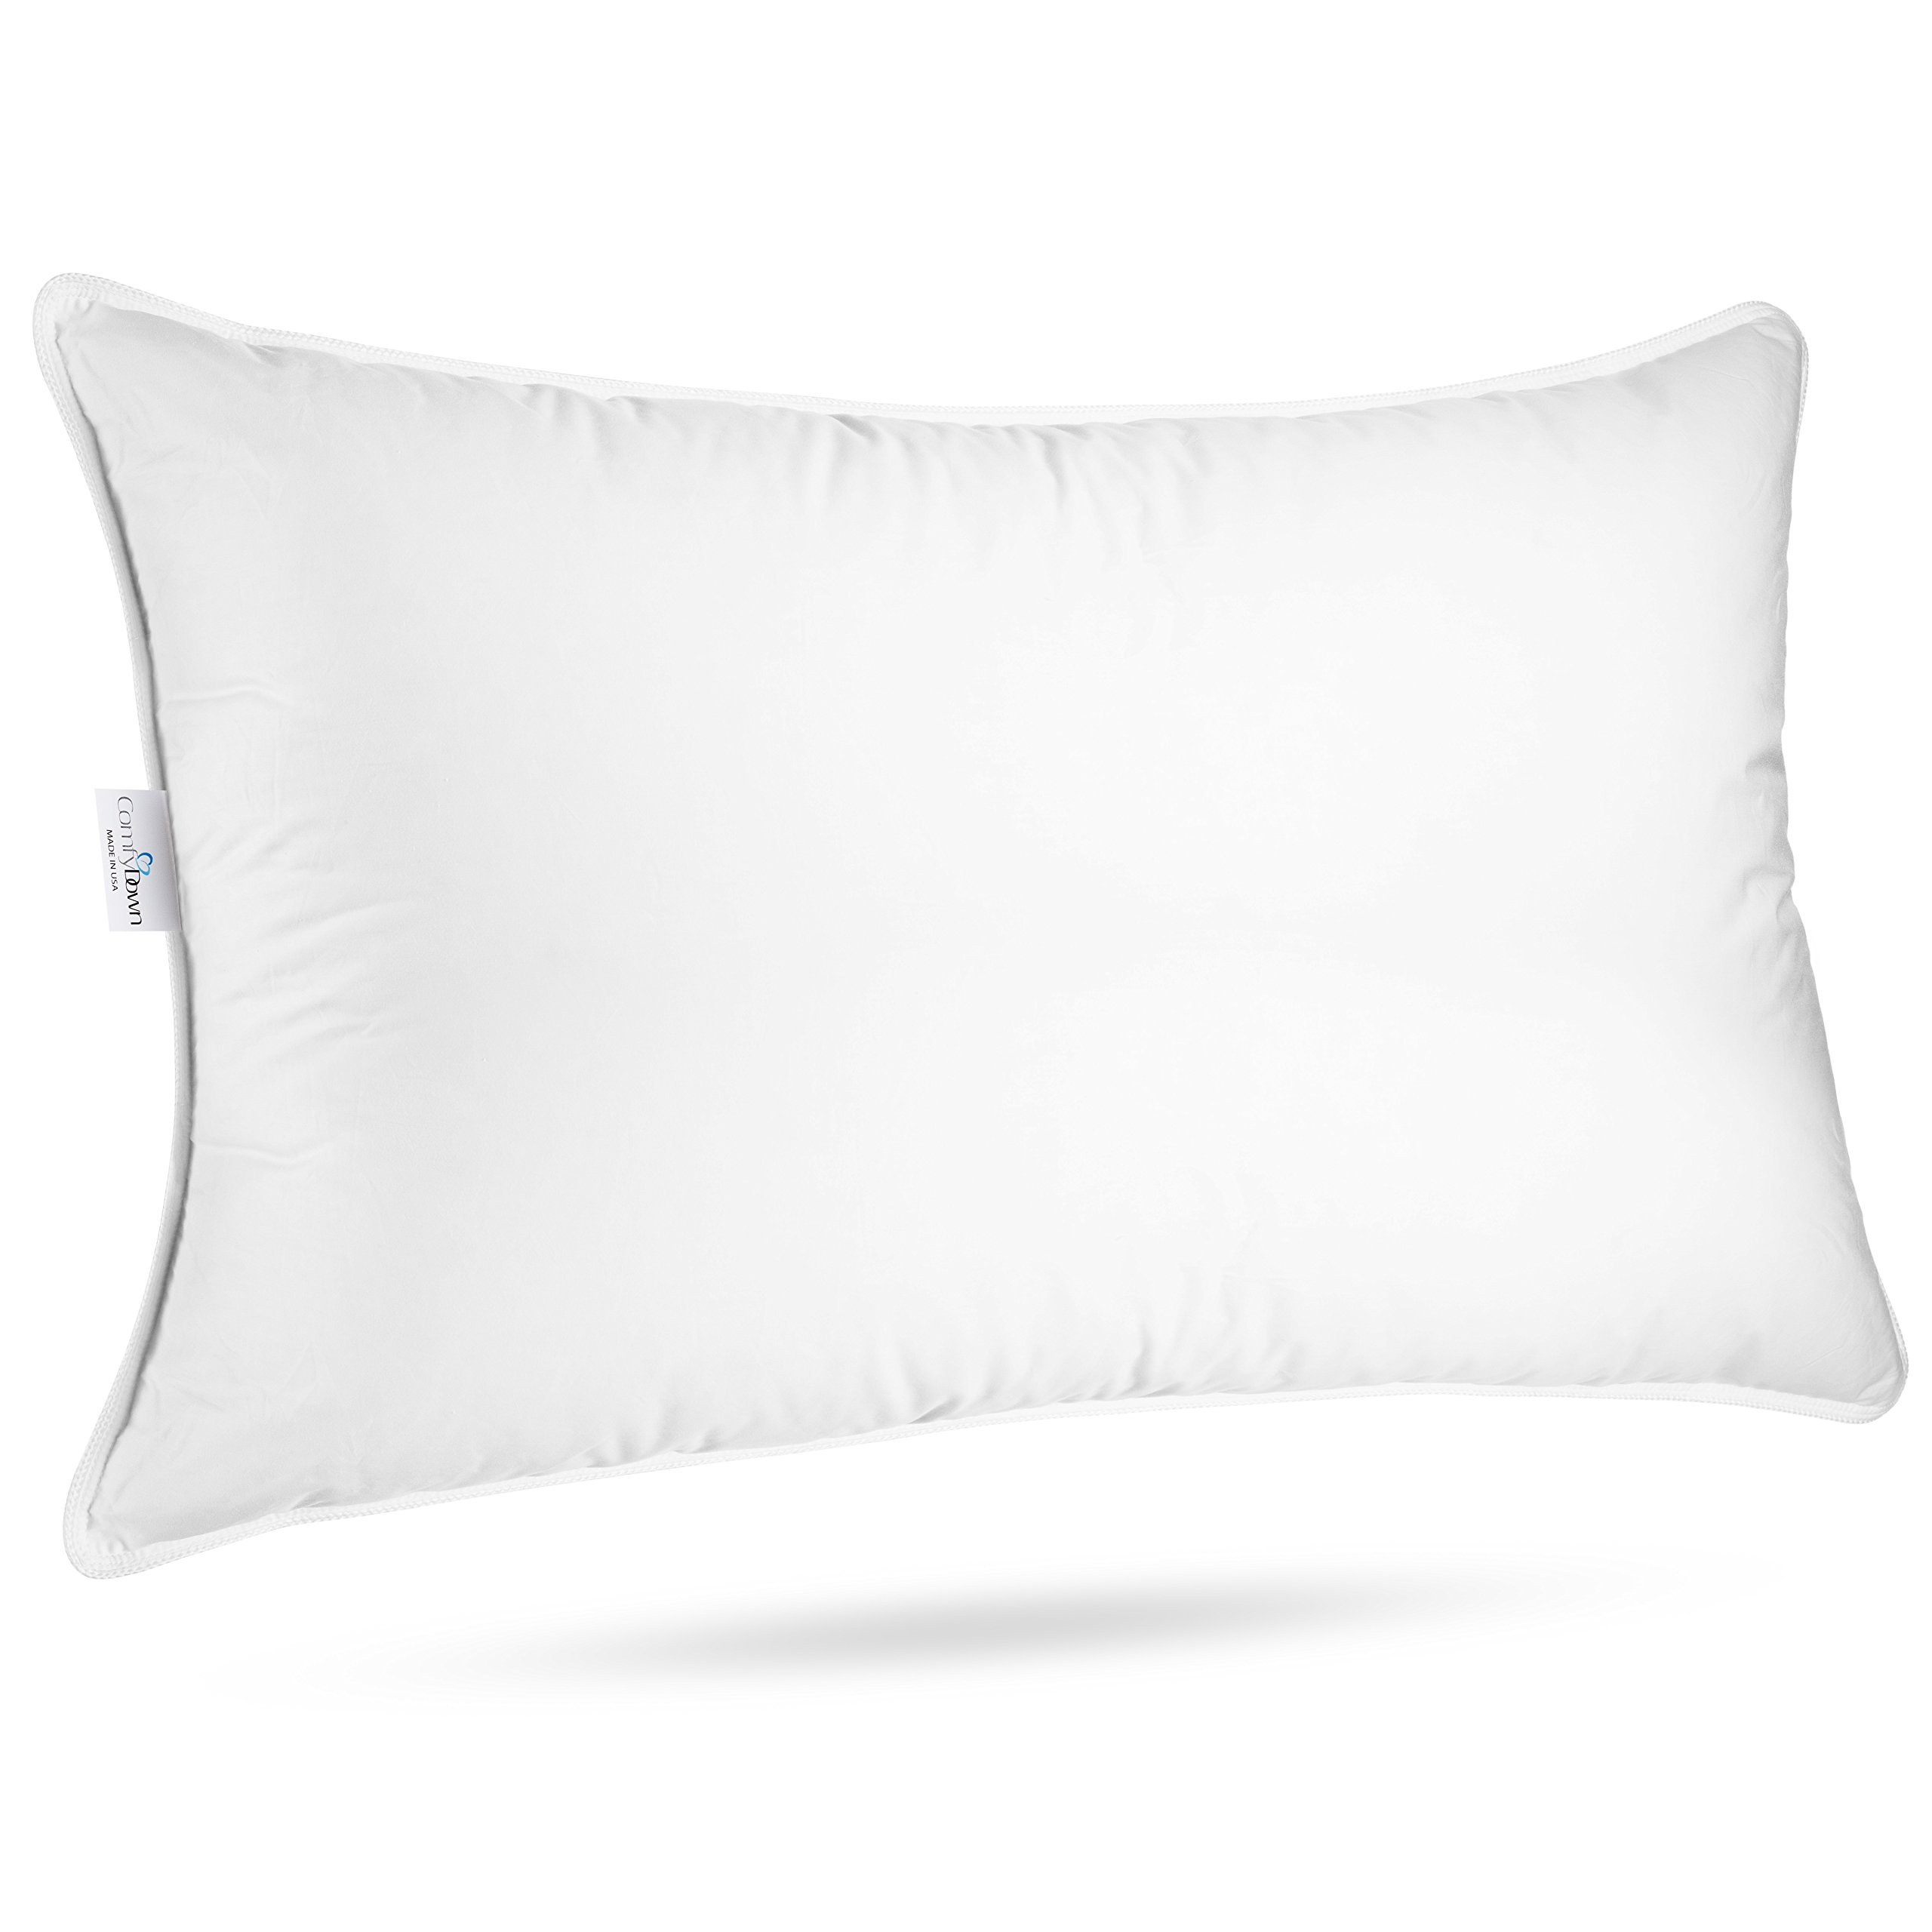 "ComfyDown Sleeping Pillow - European Goose Down, ""SOFT"" Density Pillow, 650 Fill Power, 300-Thread Count Egyptian Cotton Cover - Hypoallergenic, MADE IN USA - (Standard)"